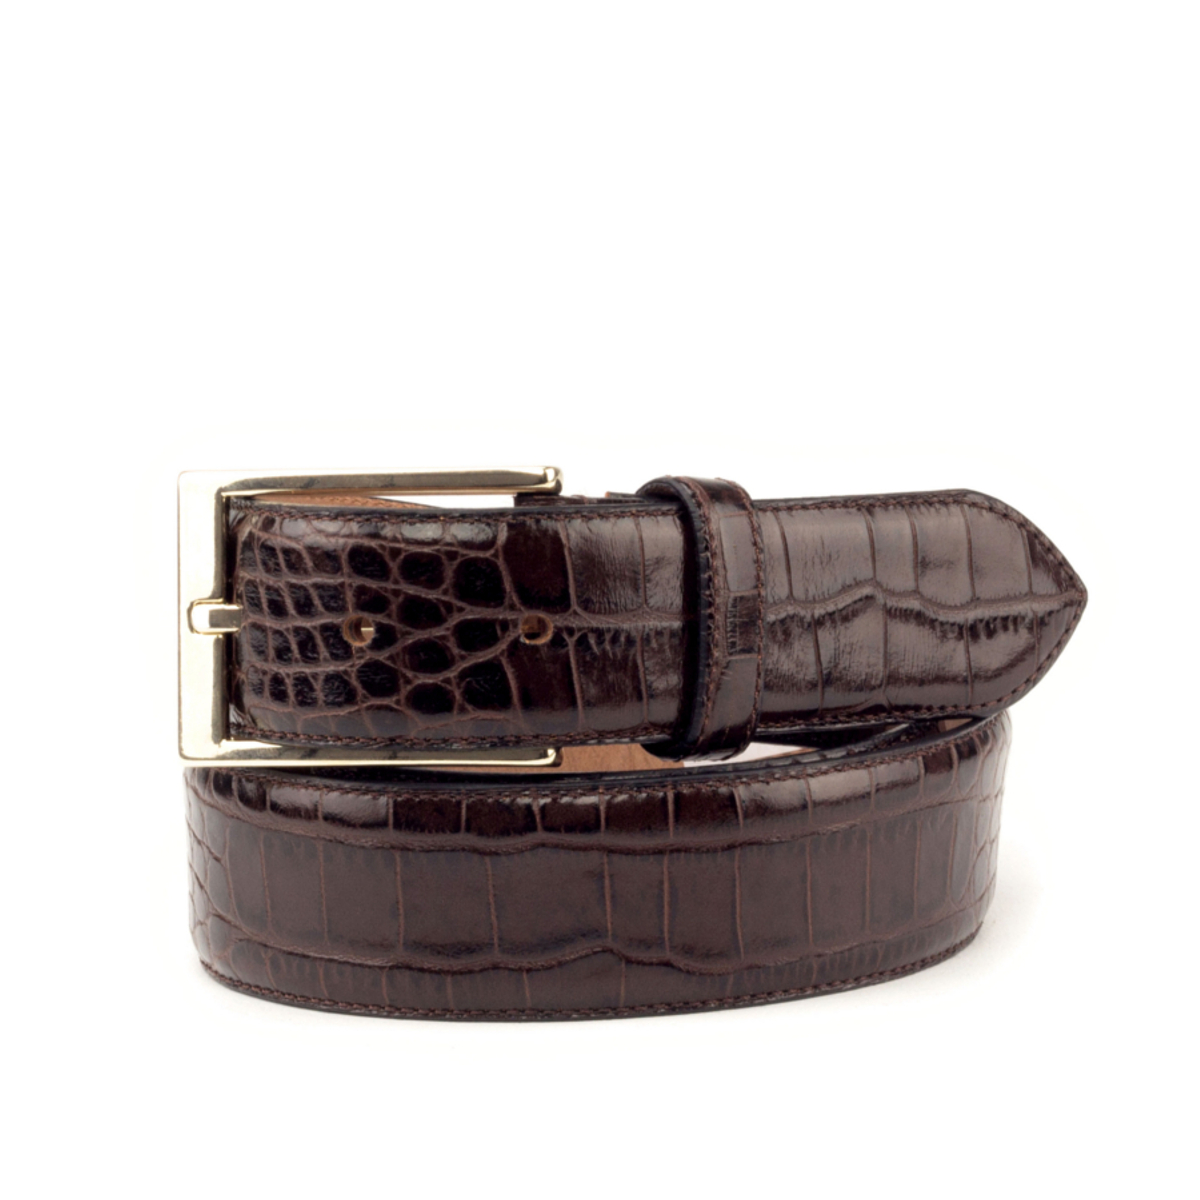 Men's bespoke belt Coello